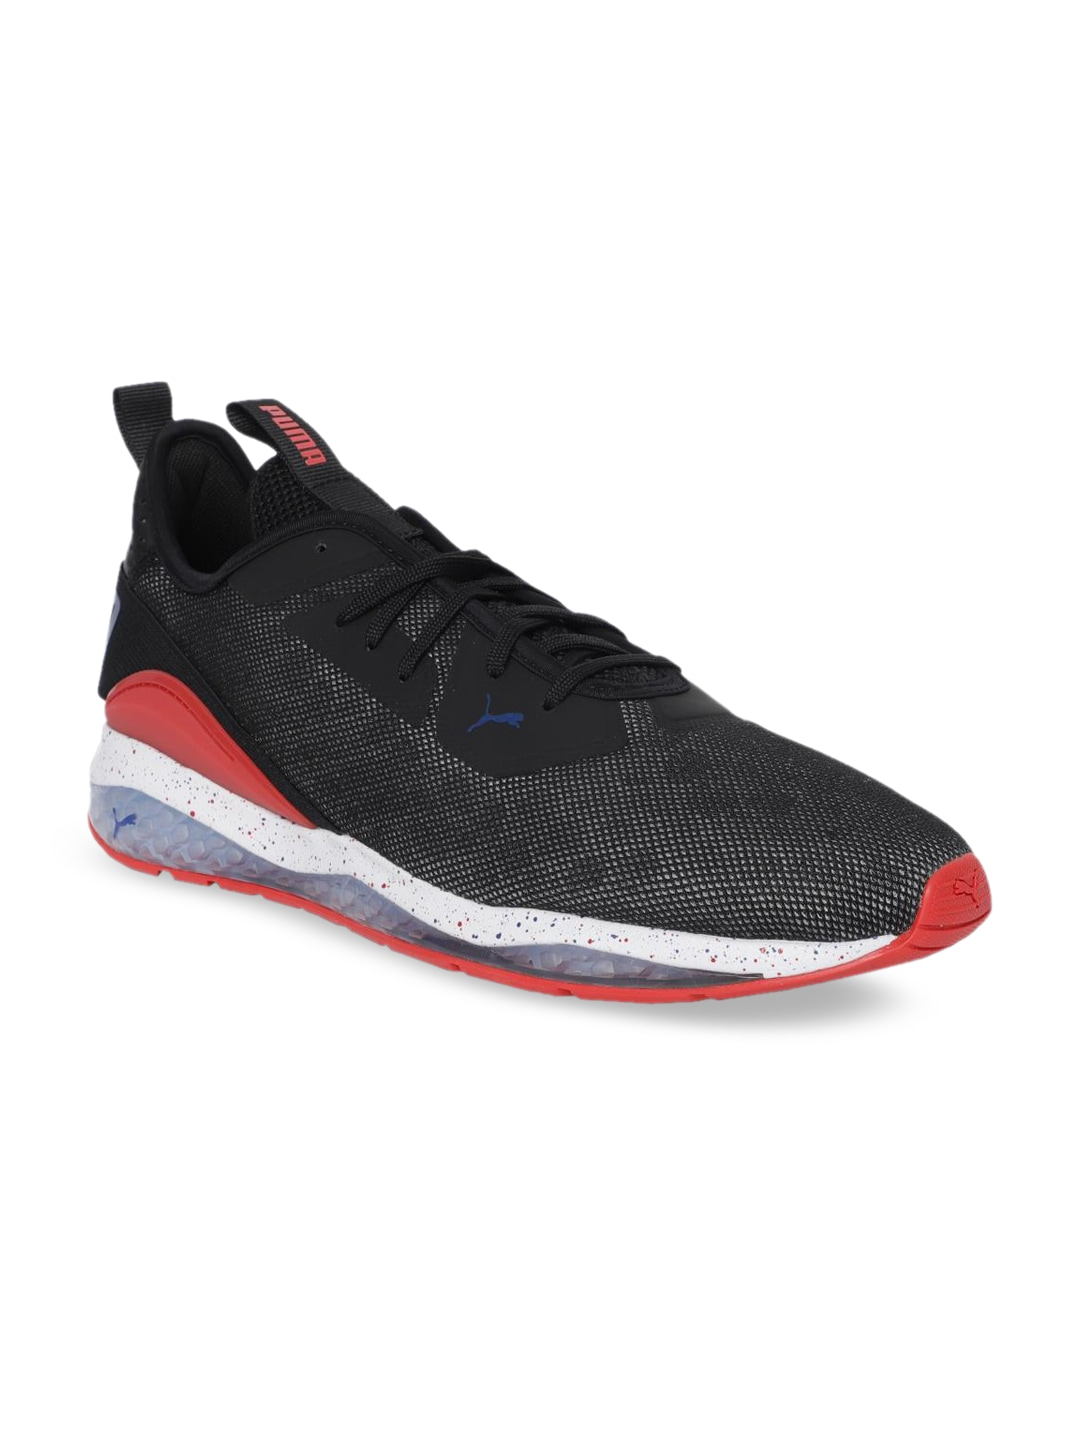 70b05fe813 Nike Puma Shoes Men - Buy Nike Puma Shoes Men online in India